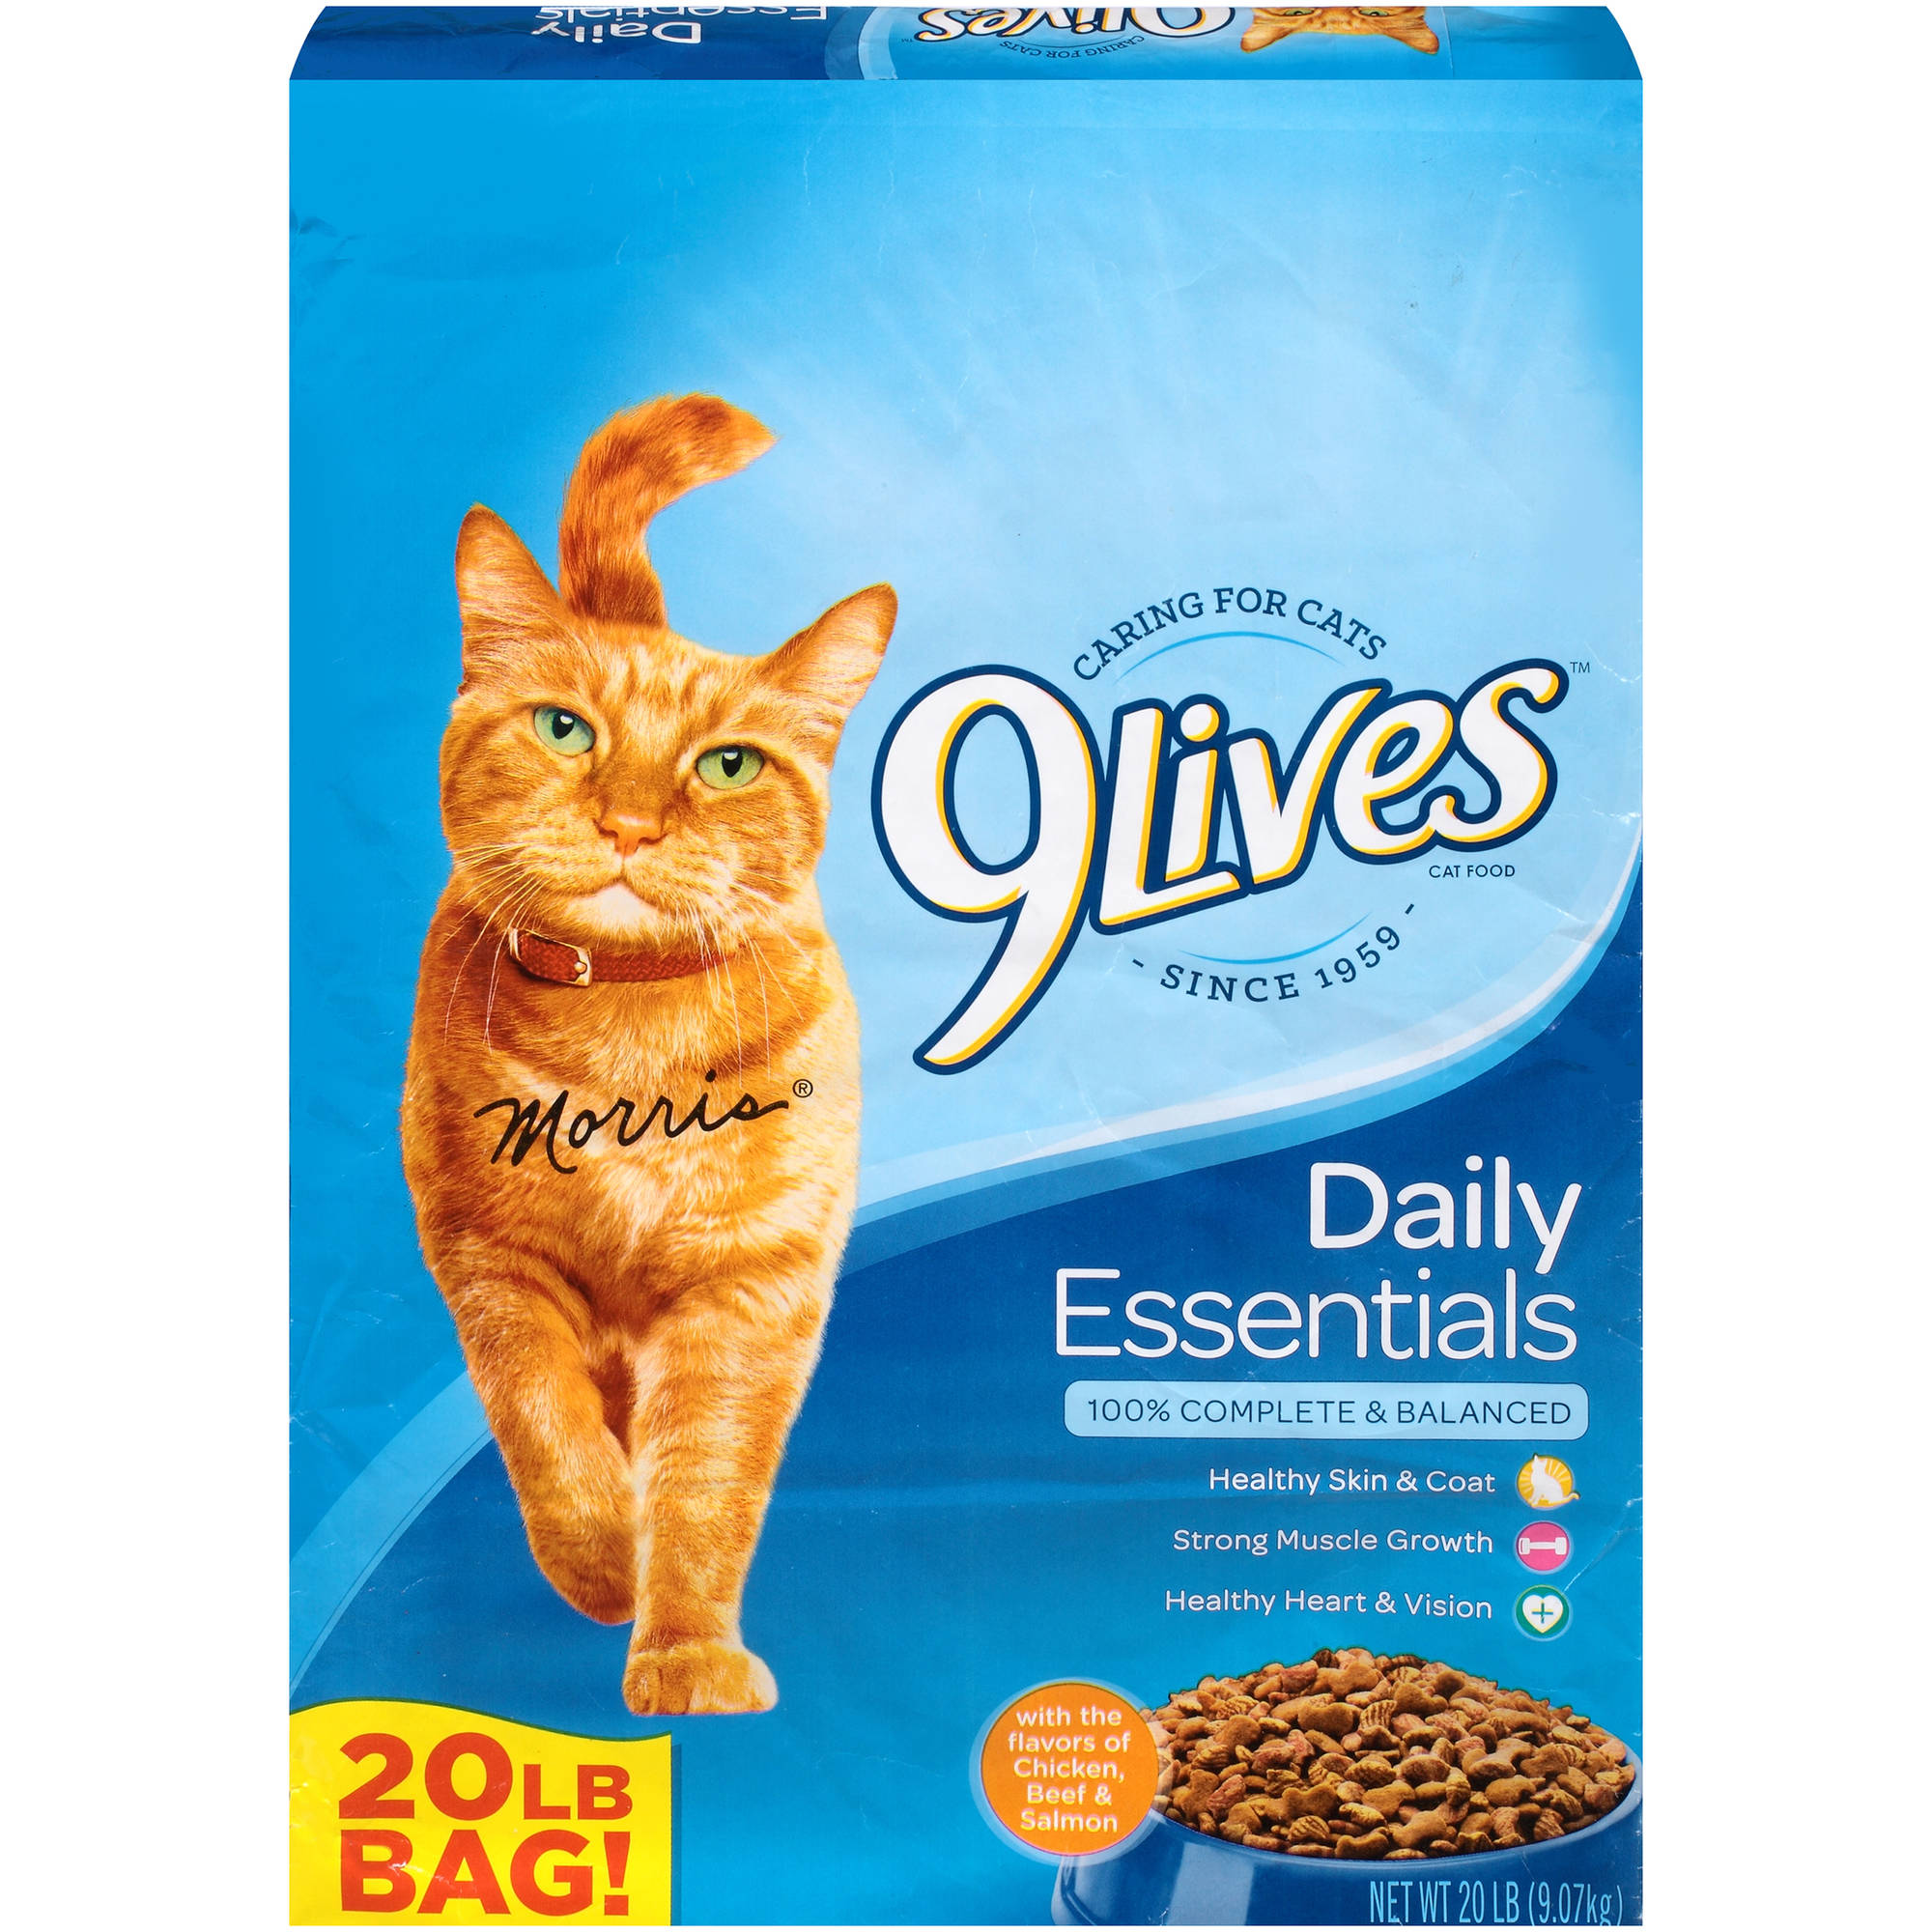 Image of 9 Lives Daily Essentials Dry Cat Food, 20 lb